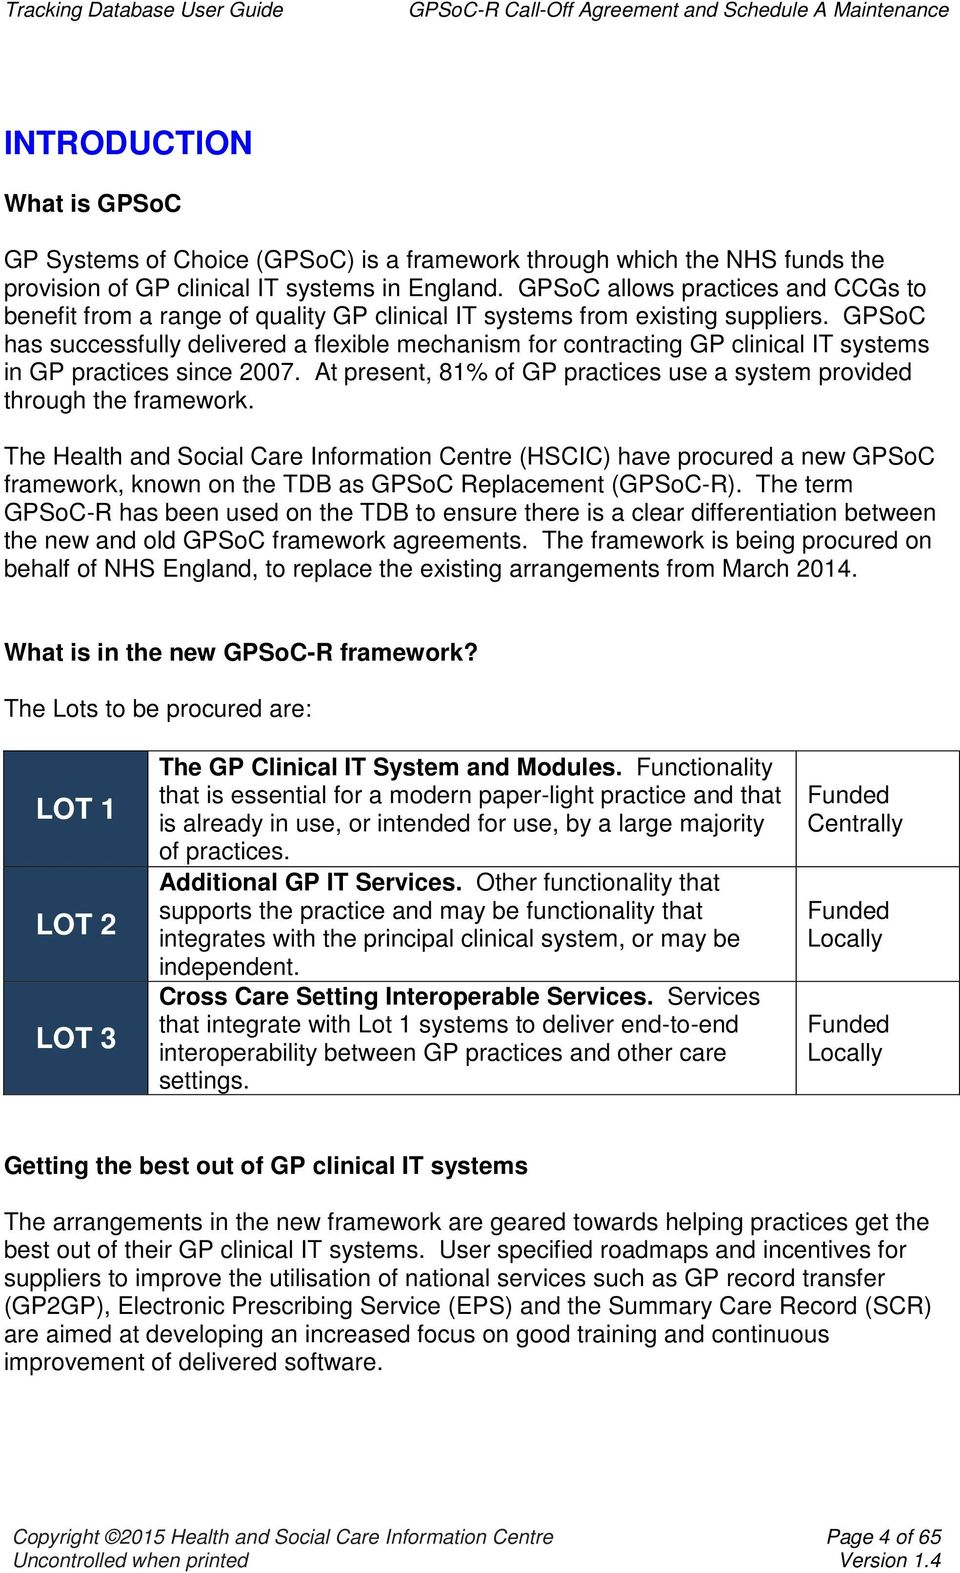 Tracking Database Gpsoc Replacement Gpsoc R Call Off Agreement And